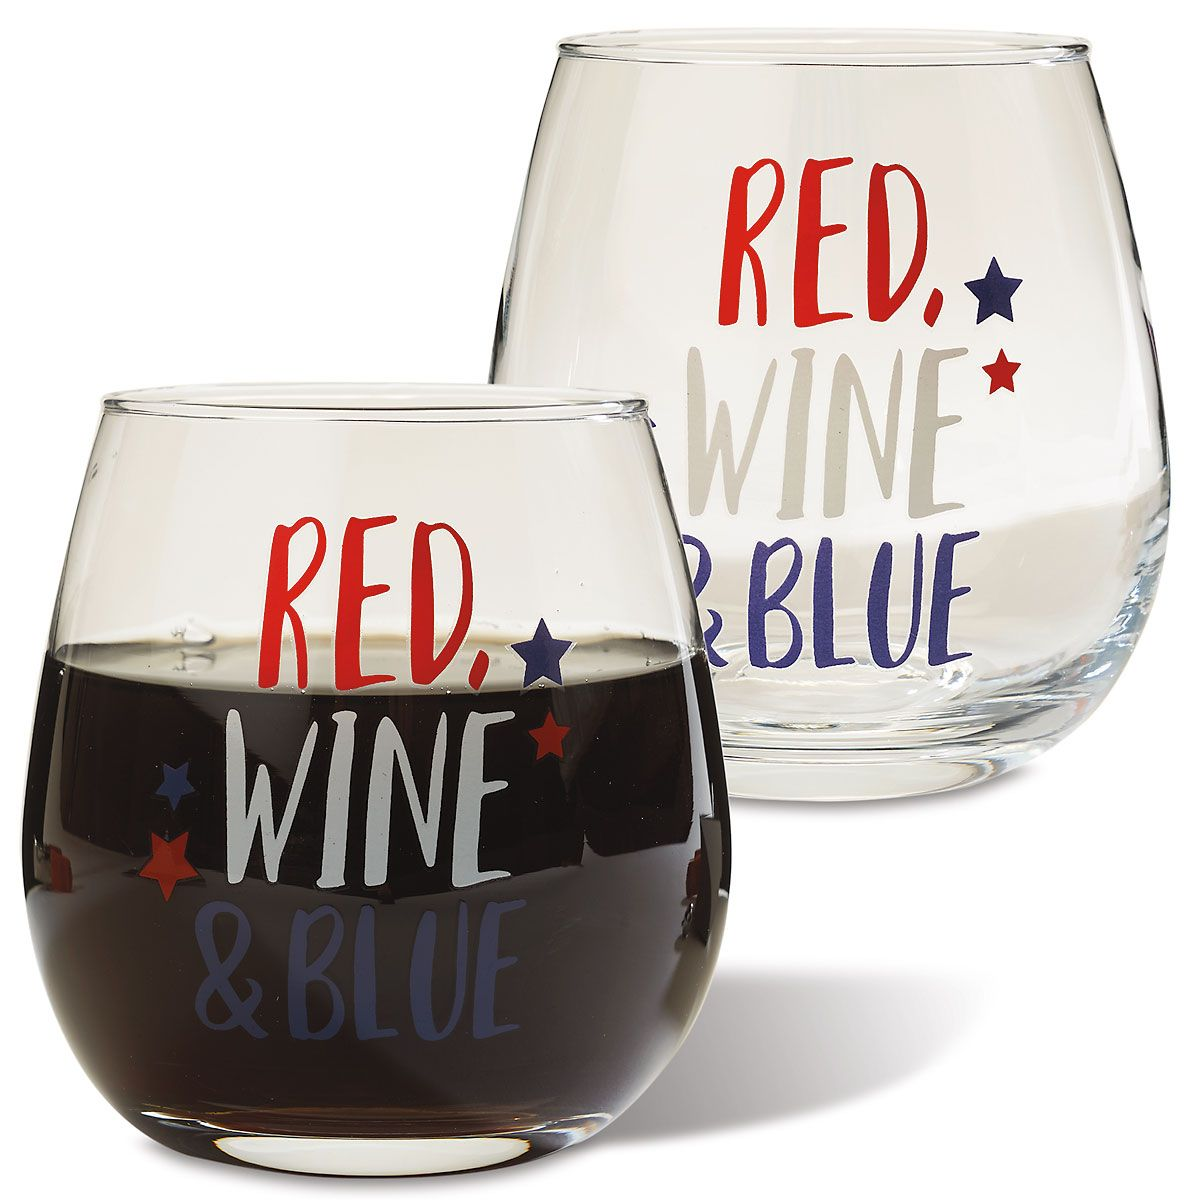 2 Patriotic Stemless Wine Glasses